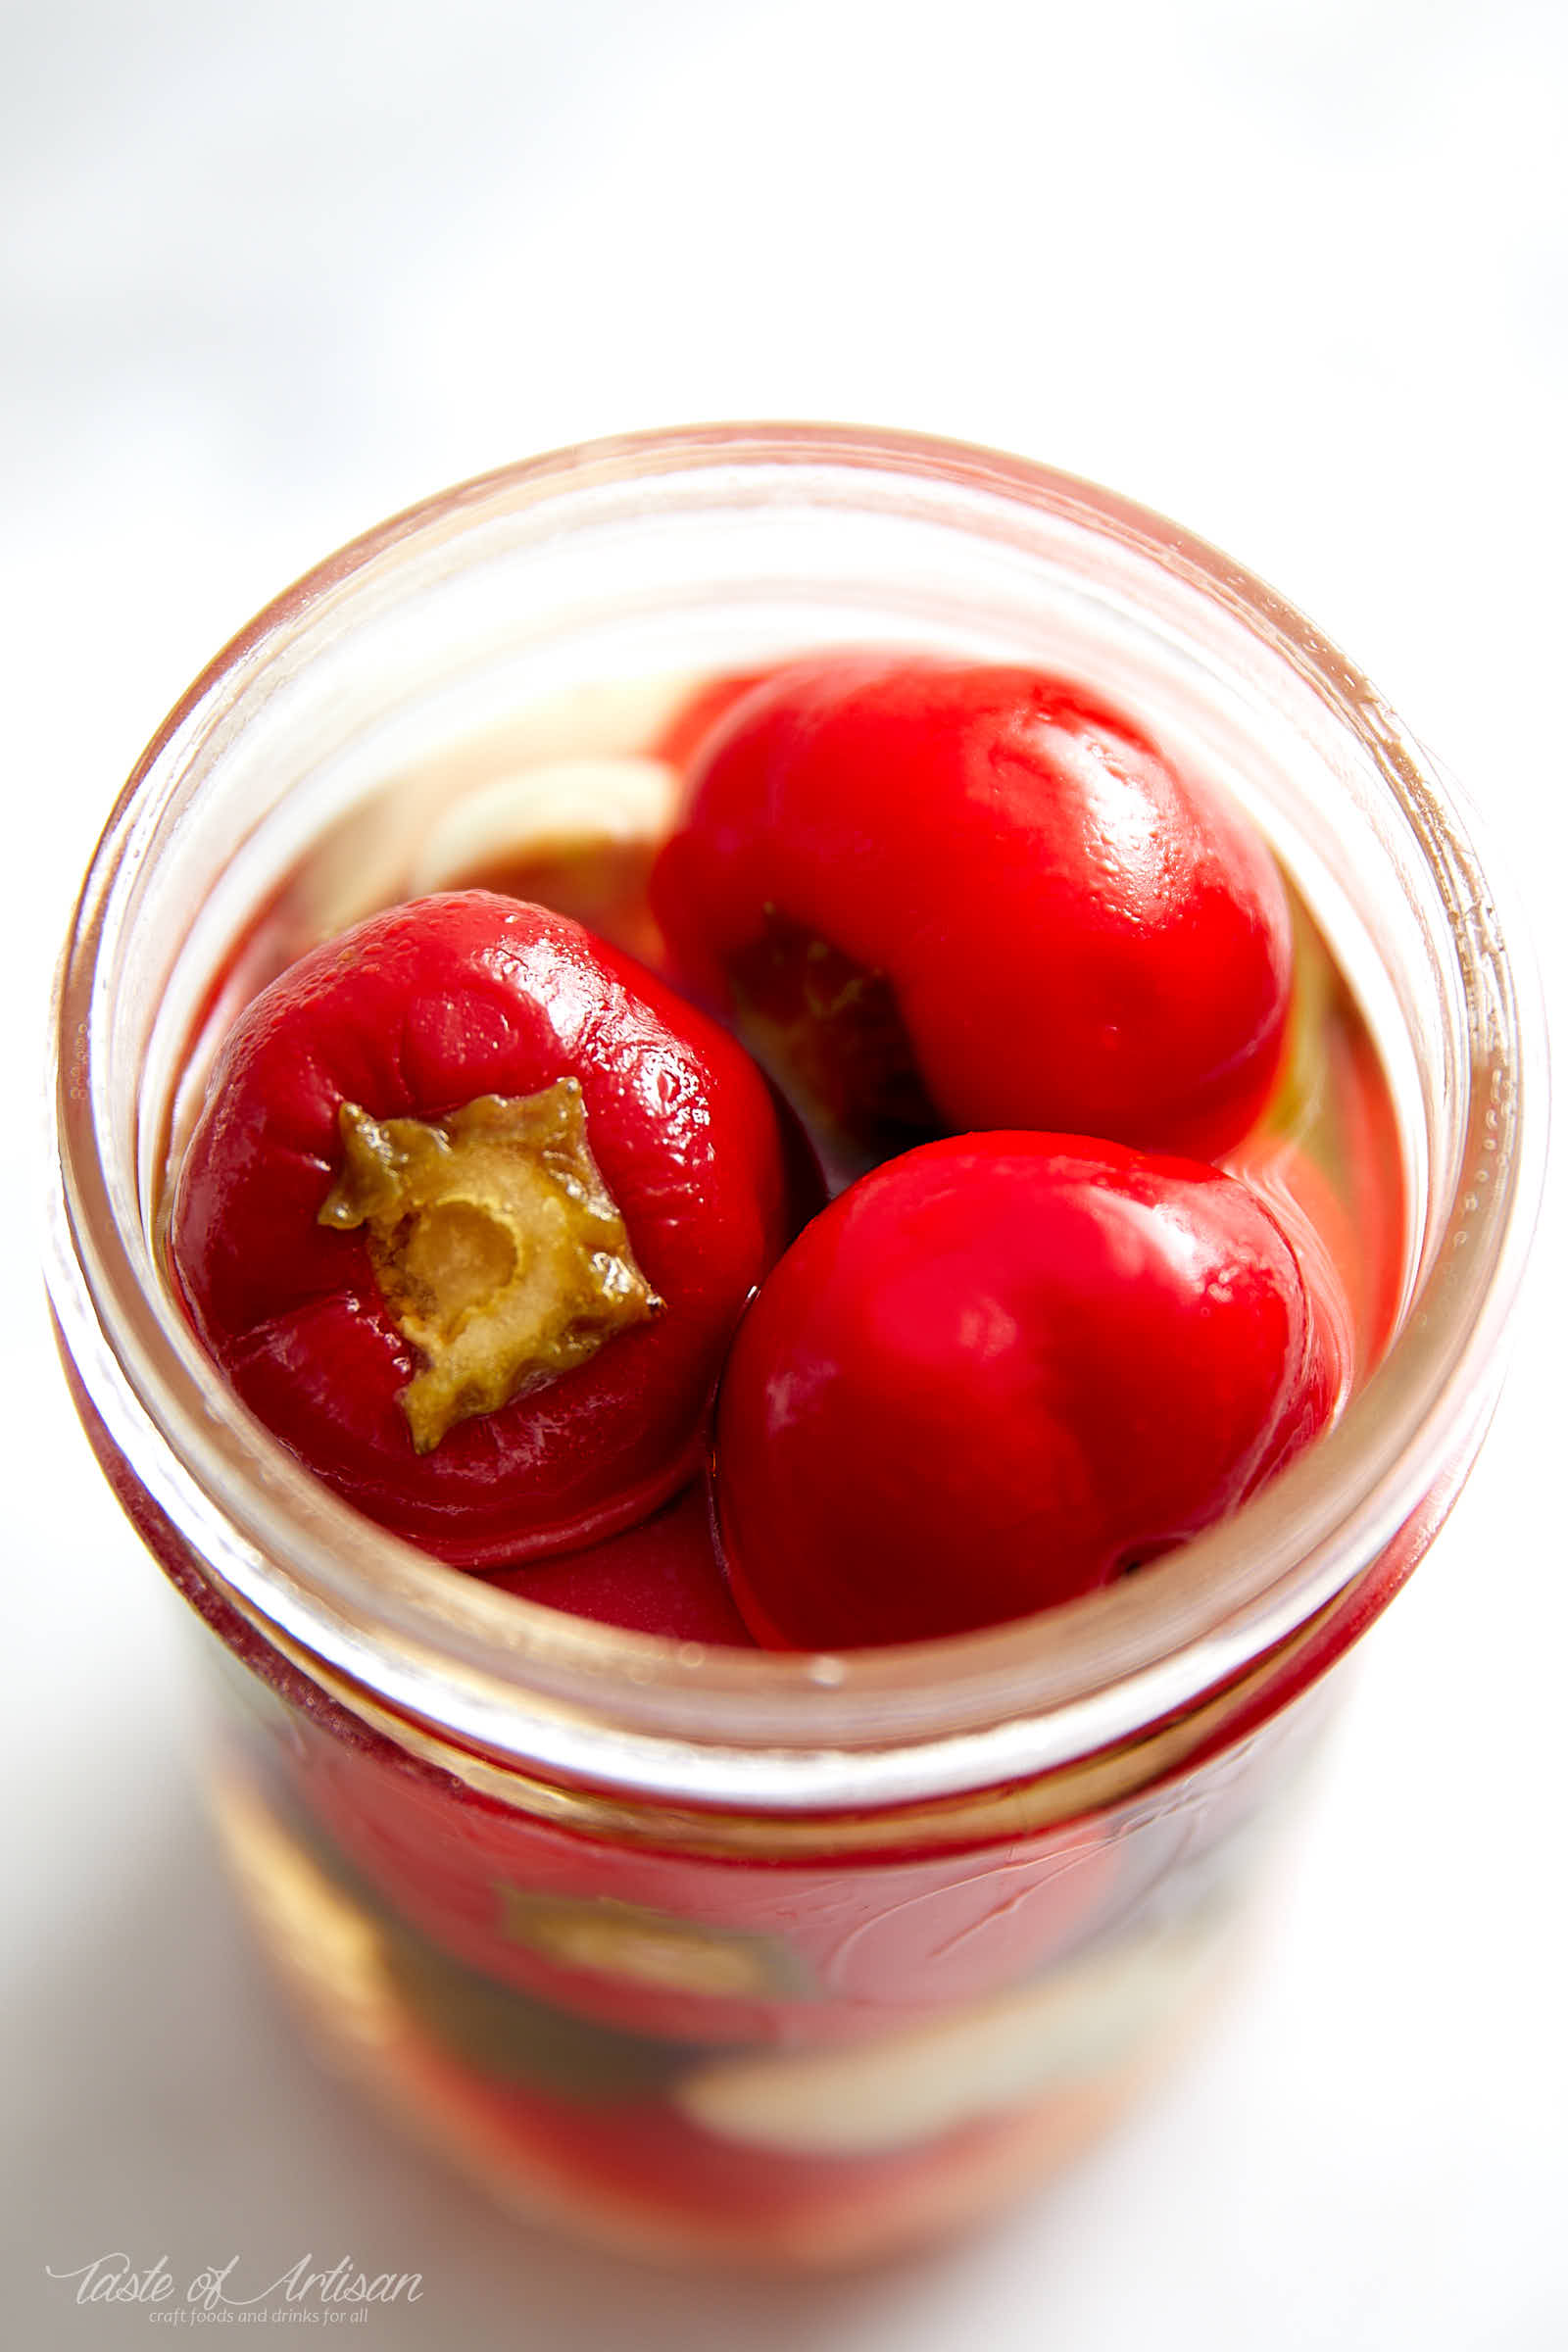 Cherry pepper pickled in a savory, with just a touch of sweetness, pickling liquid. These pickled cherry peppers are excellent with grilled and other meats. | Taste of Artisan